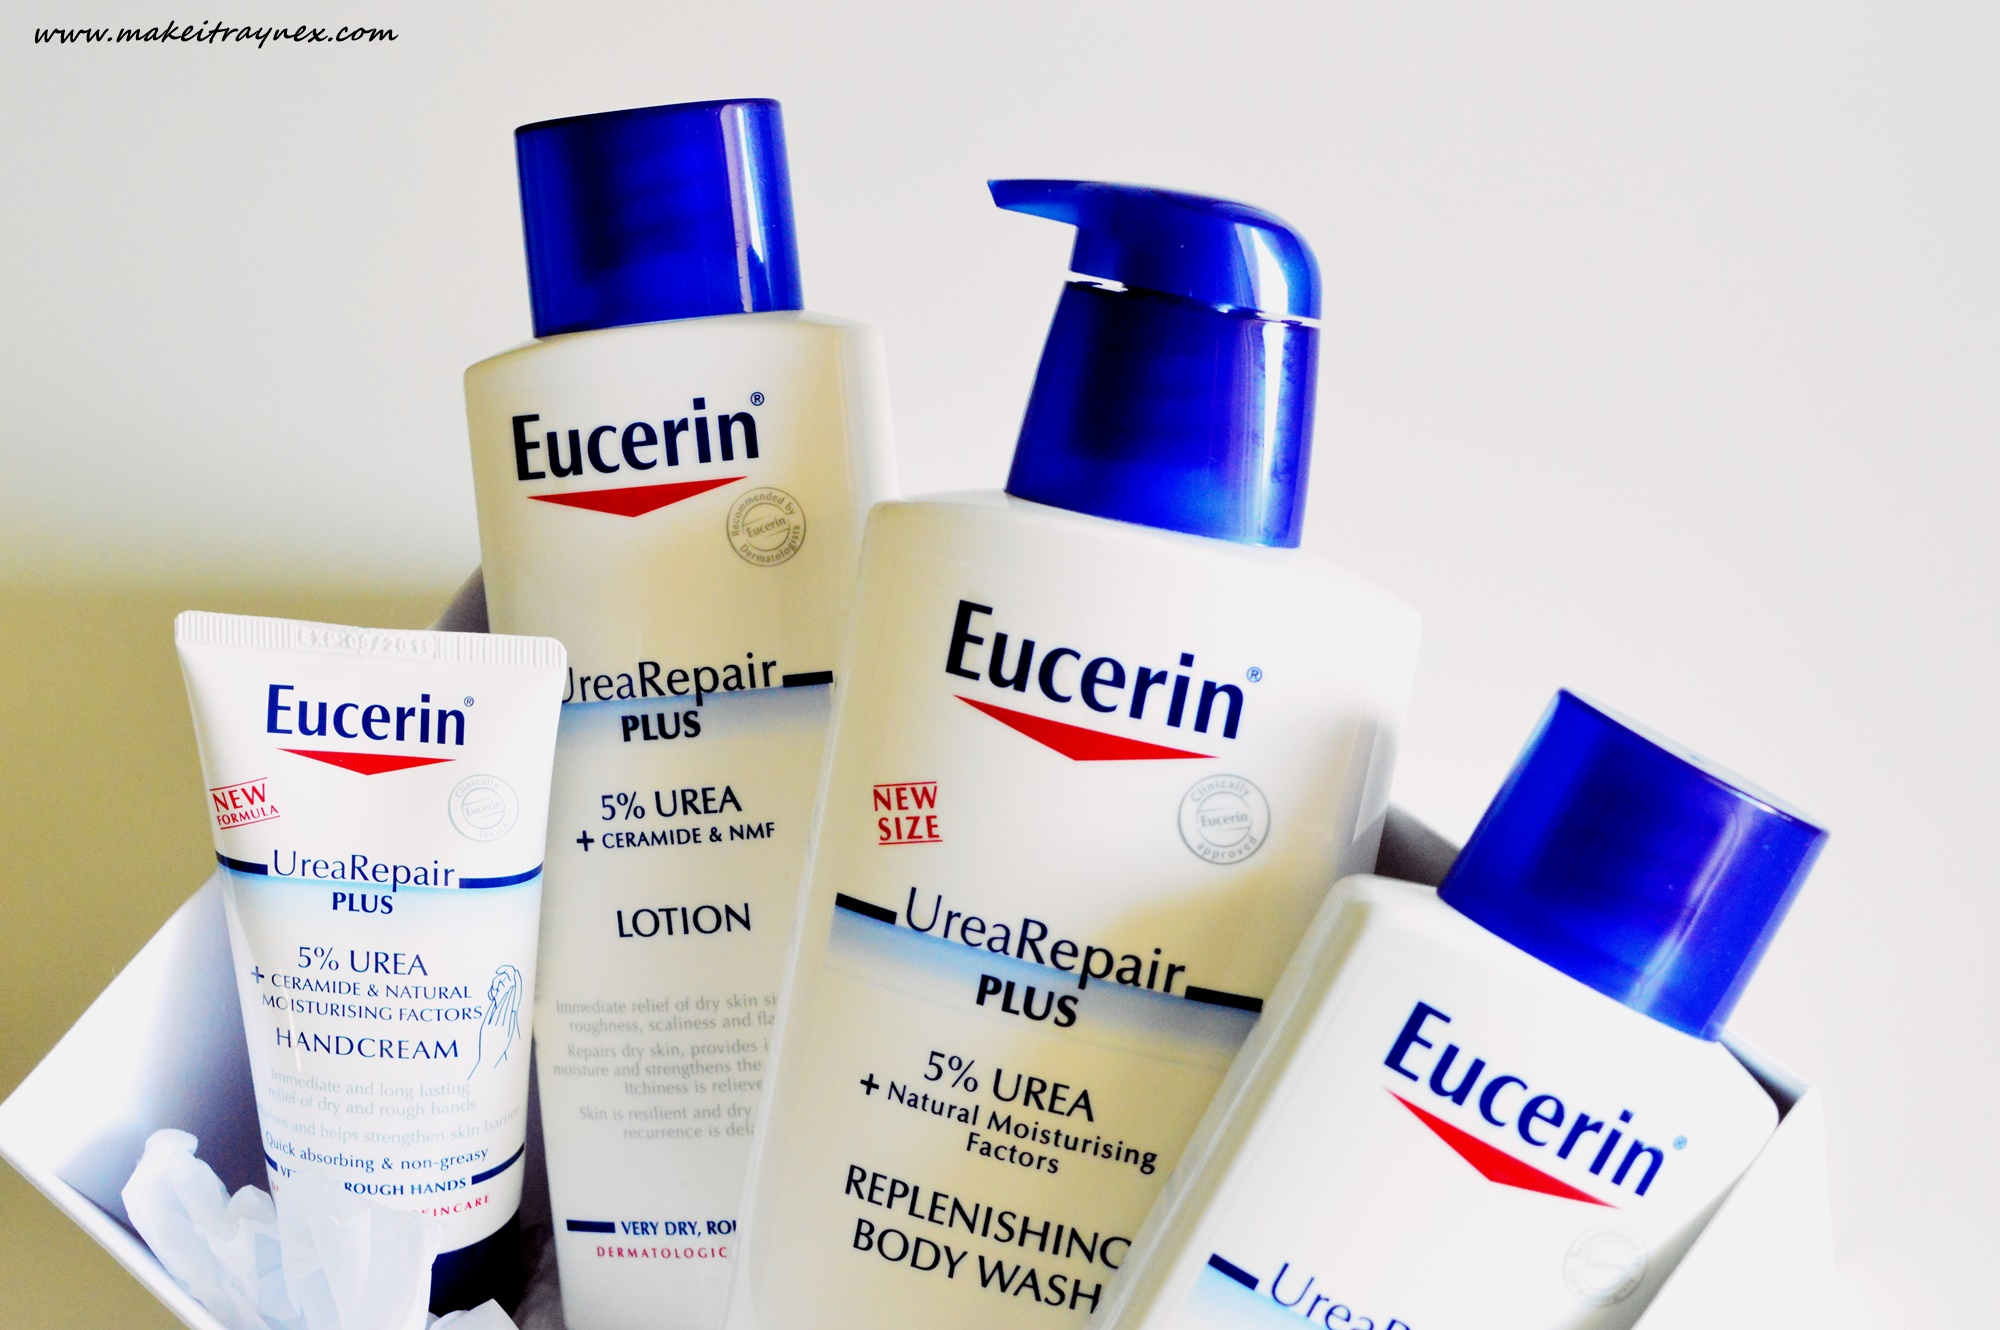 The UreaRepair PLUS range from Eucerin is back with new packaging, just in time for your Winter skin! {REVIEW}